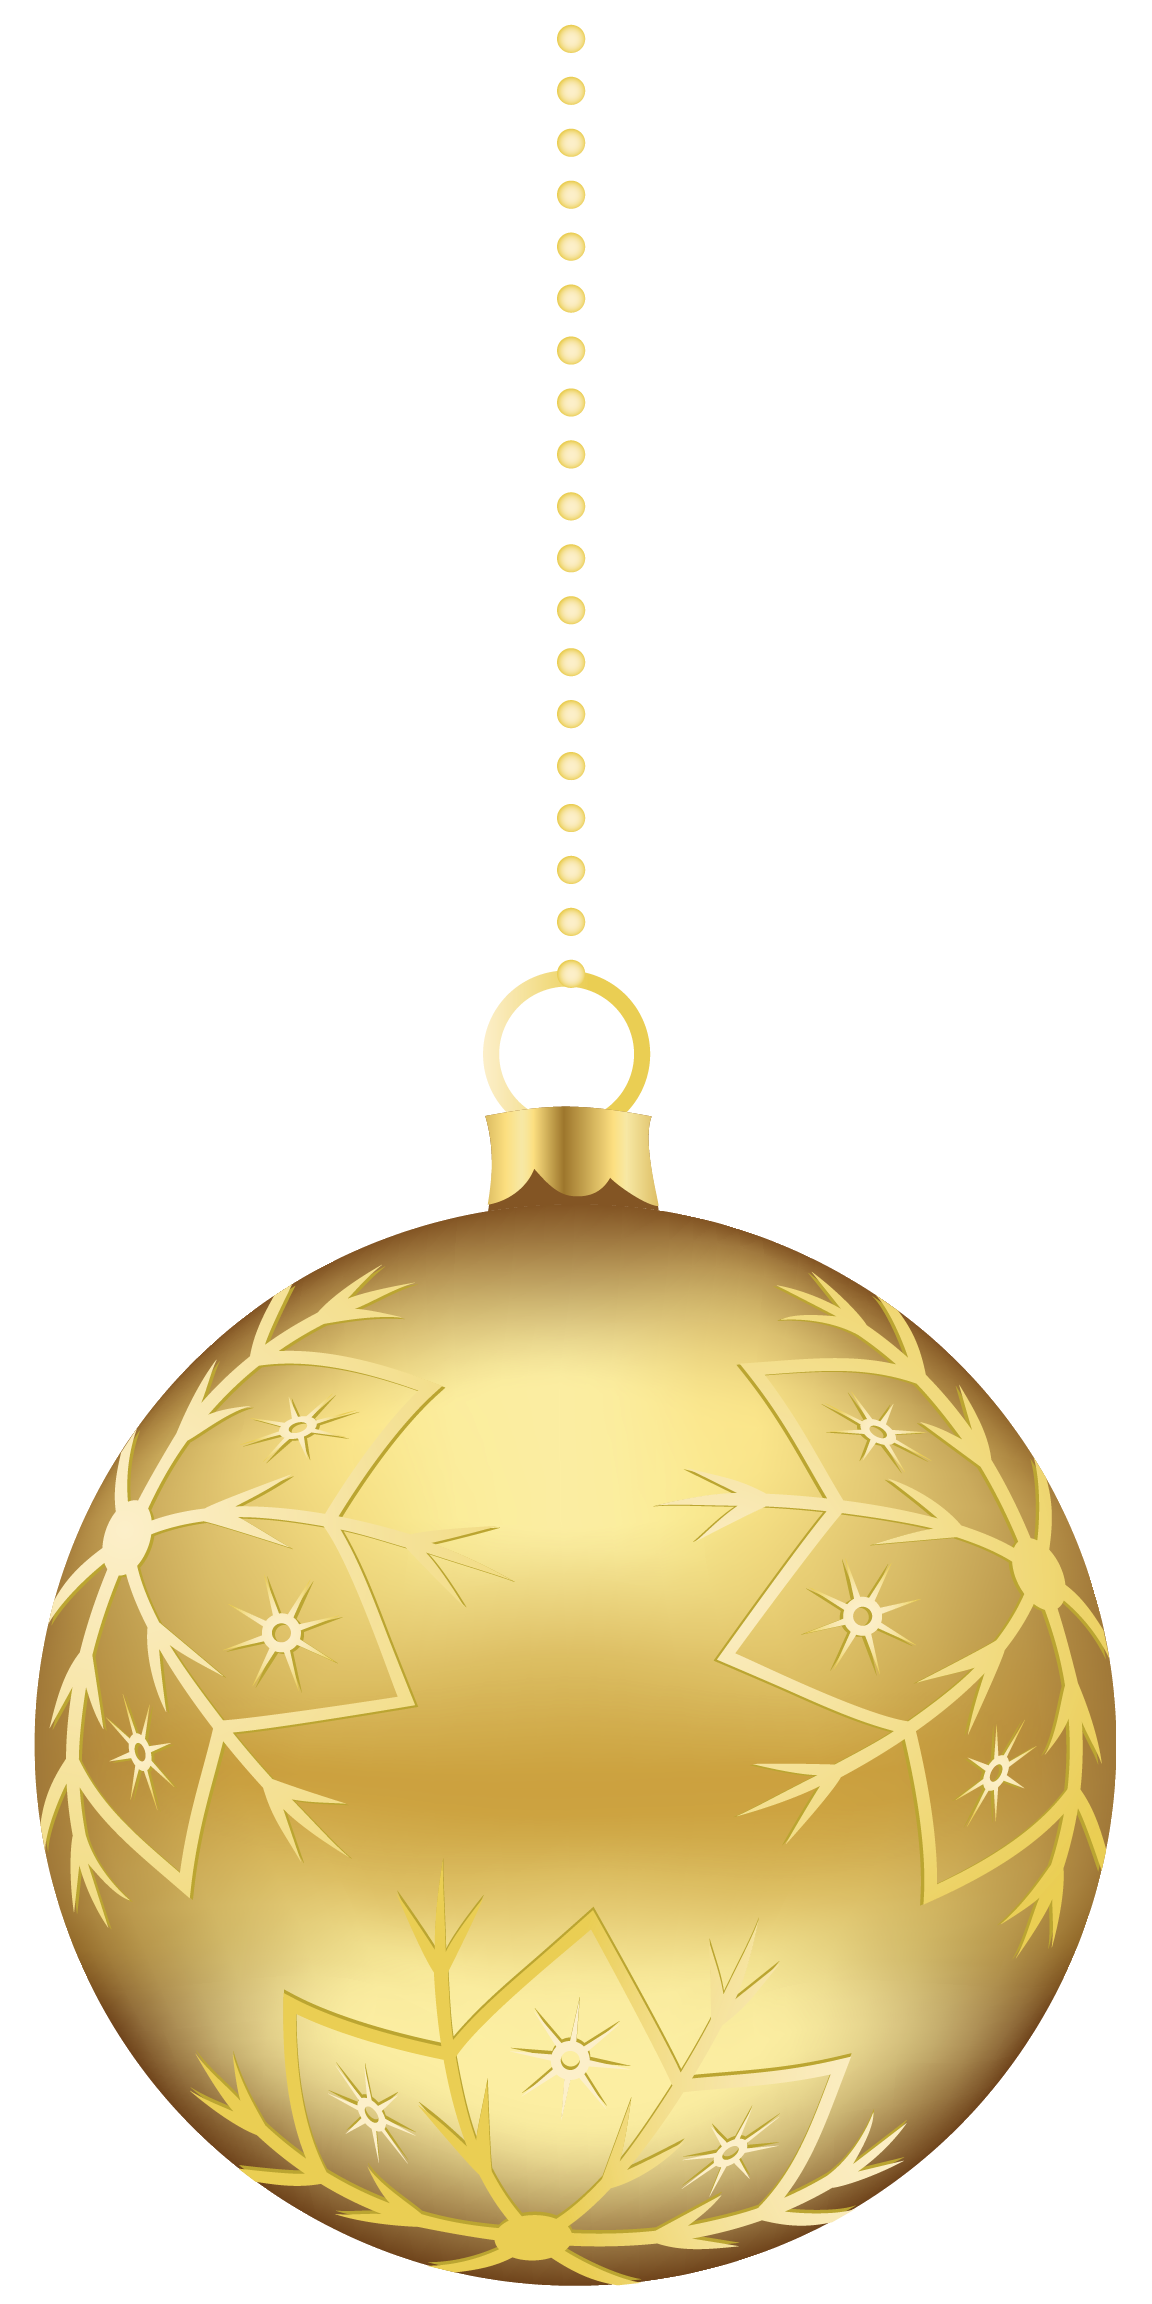 Christmas ornament Christmas decoration Gold Clip art.